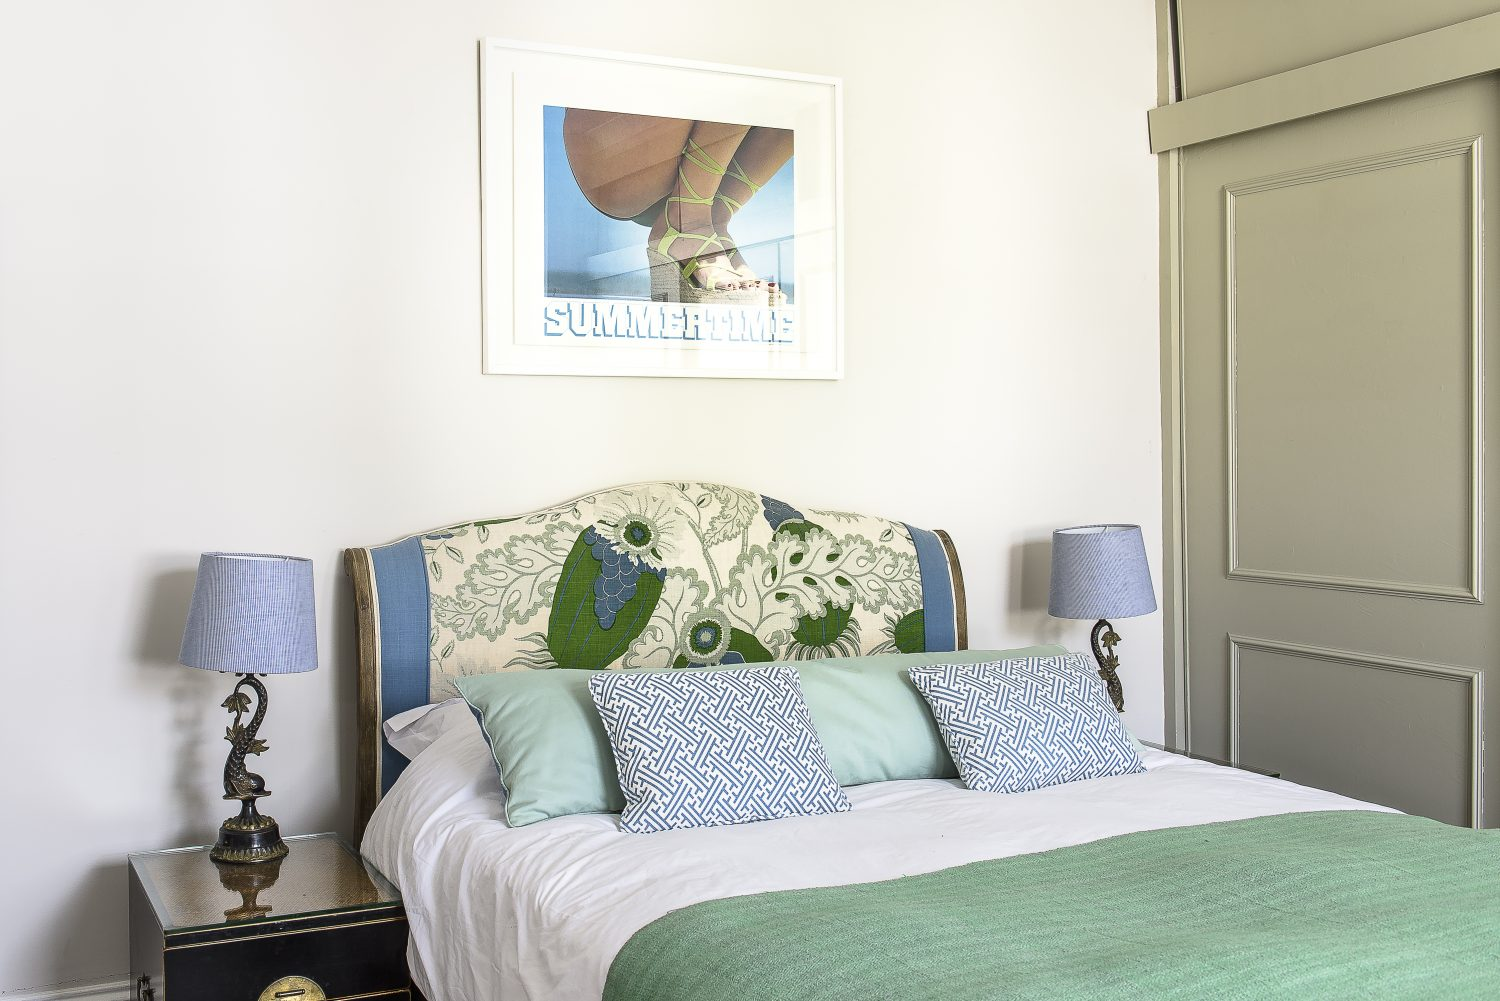 Jules re-covered the master bed's headboard that she bought from Loaf. The bedside tables are topped with bronze dolphin lamps, from unwanted stock that Jules sells on Haines Collection.